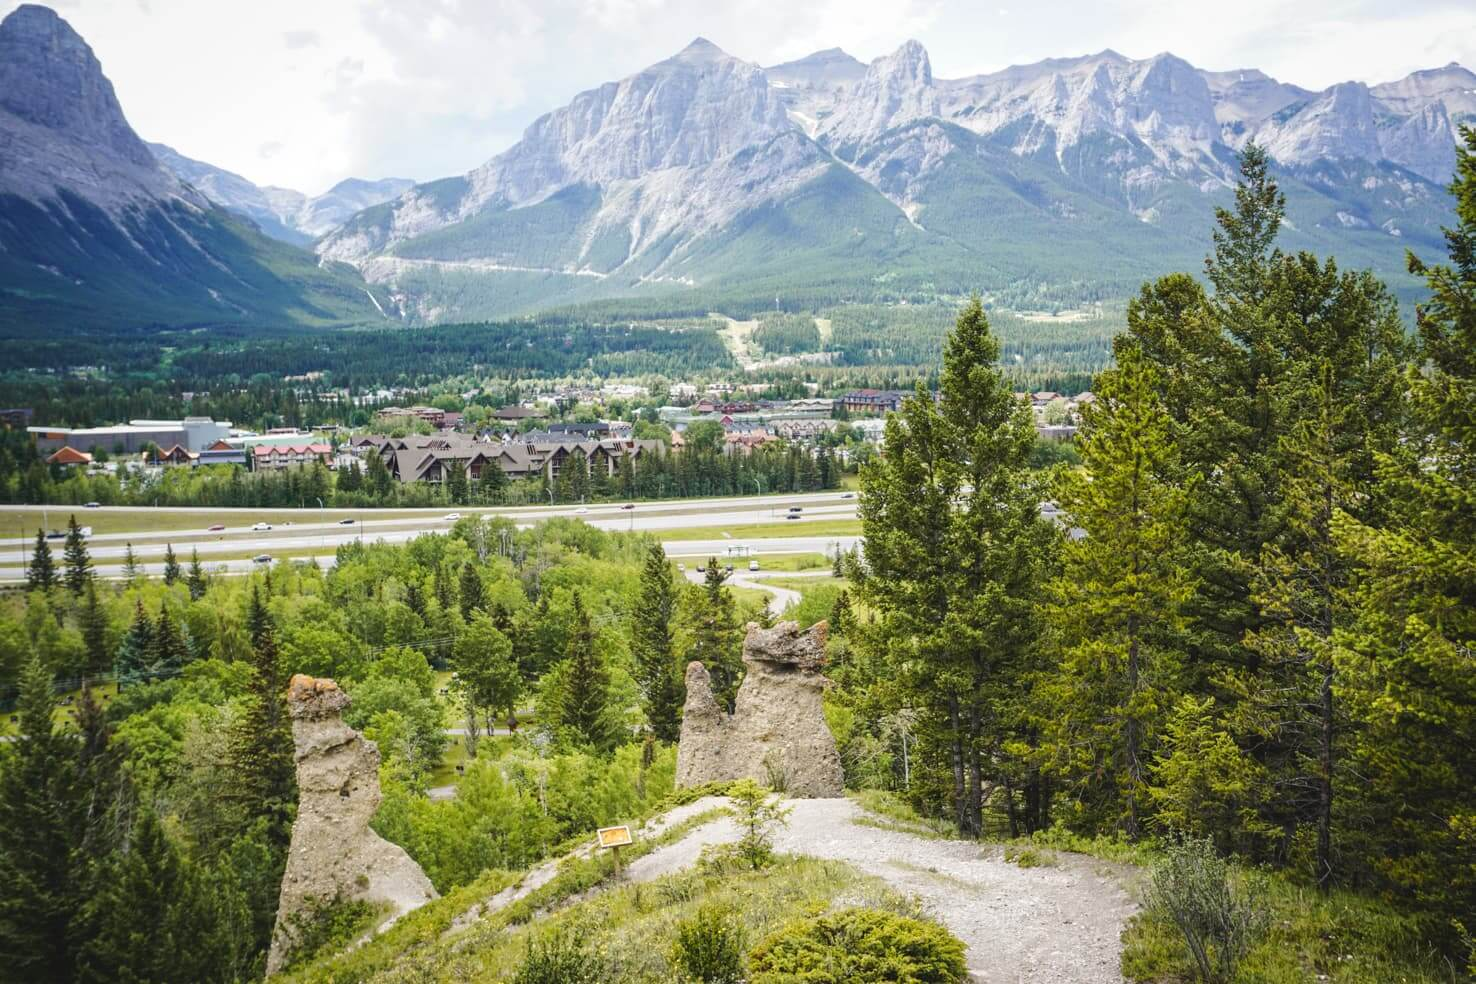 20 things to do in Canmore - visit sandy Hoodoos